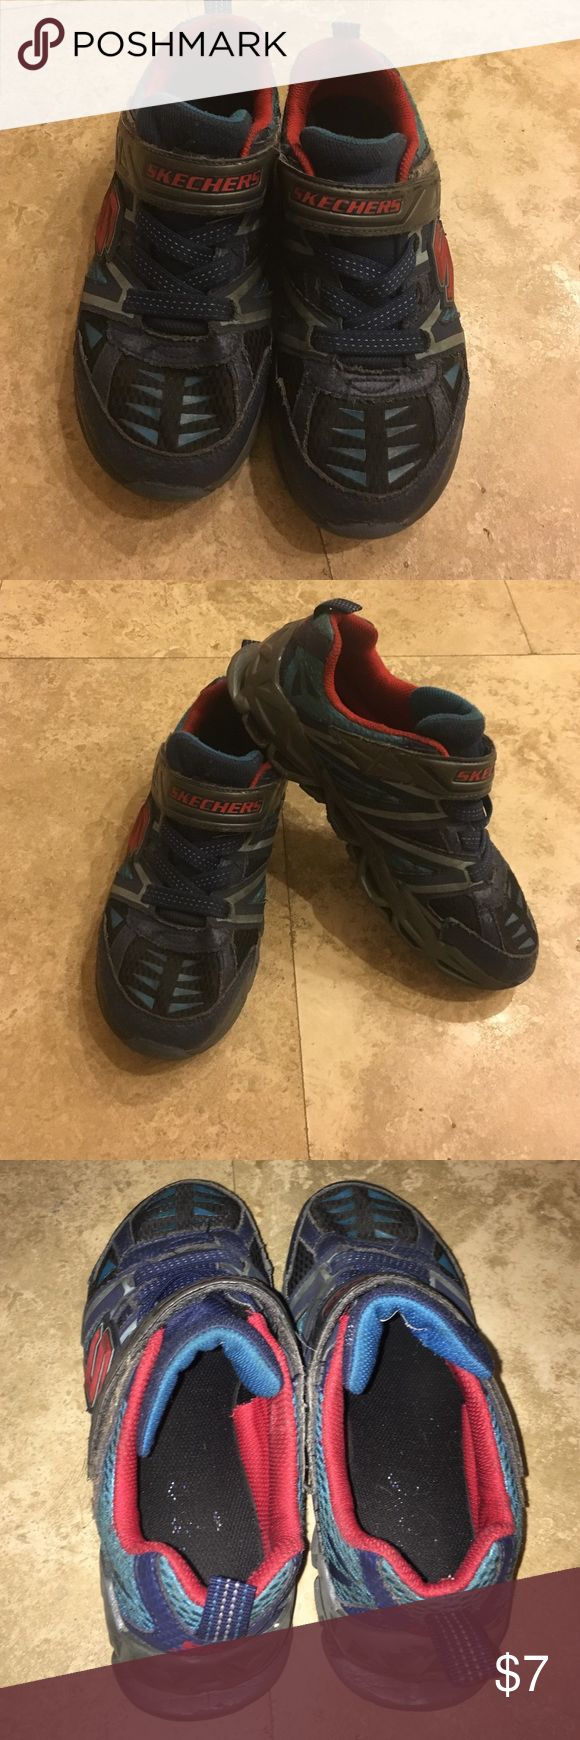 Sketchers Boy's Velcro Sneakers Worn with love and now looking for a new home. No tie up laces just Velcro. Frayed on seems and a little scuffed up but otherwise in good condition. Skechers Shoes Sneakers